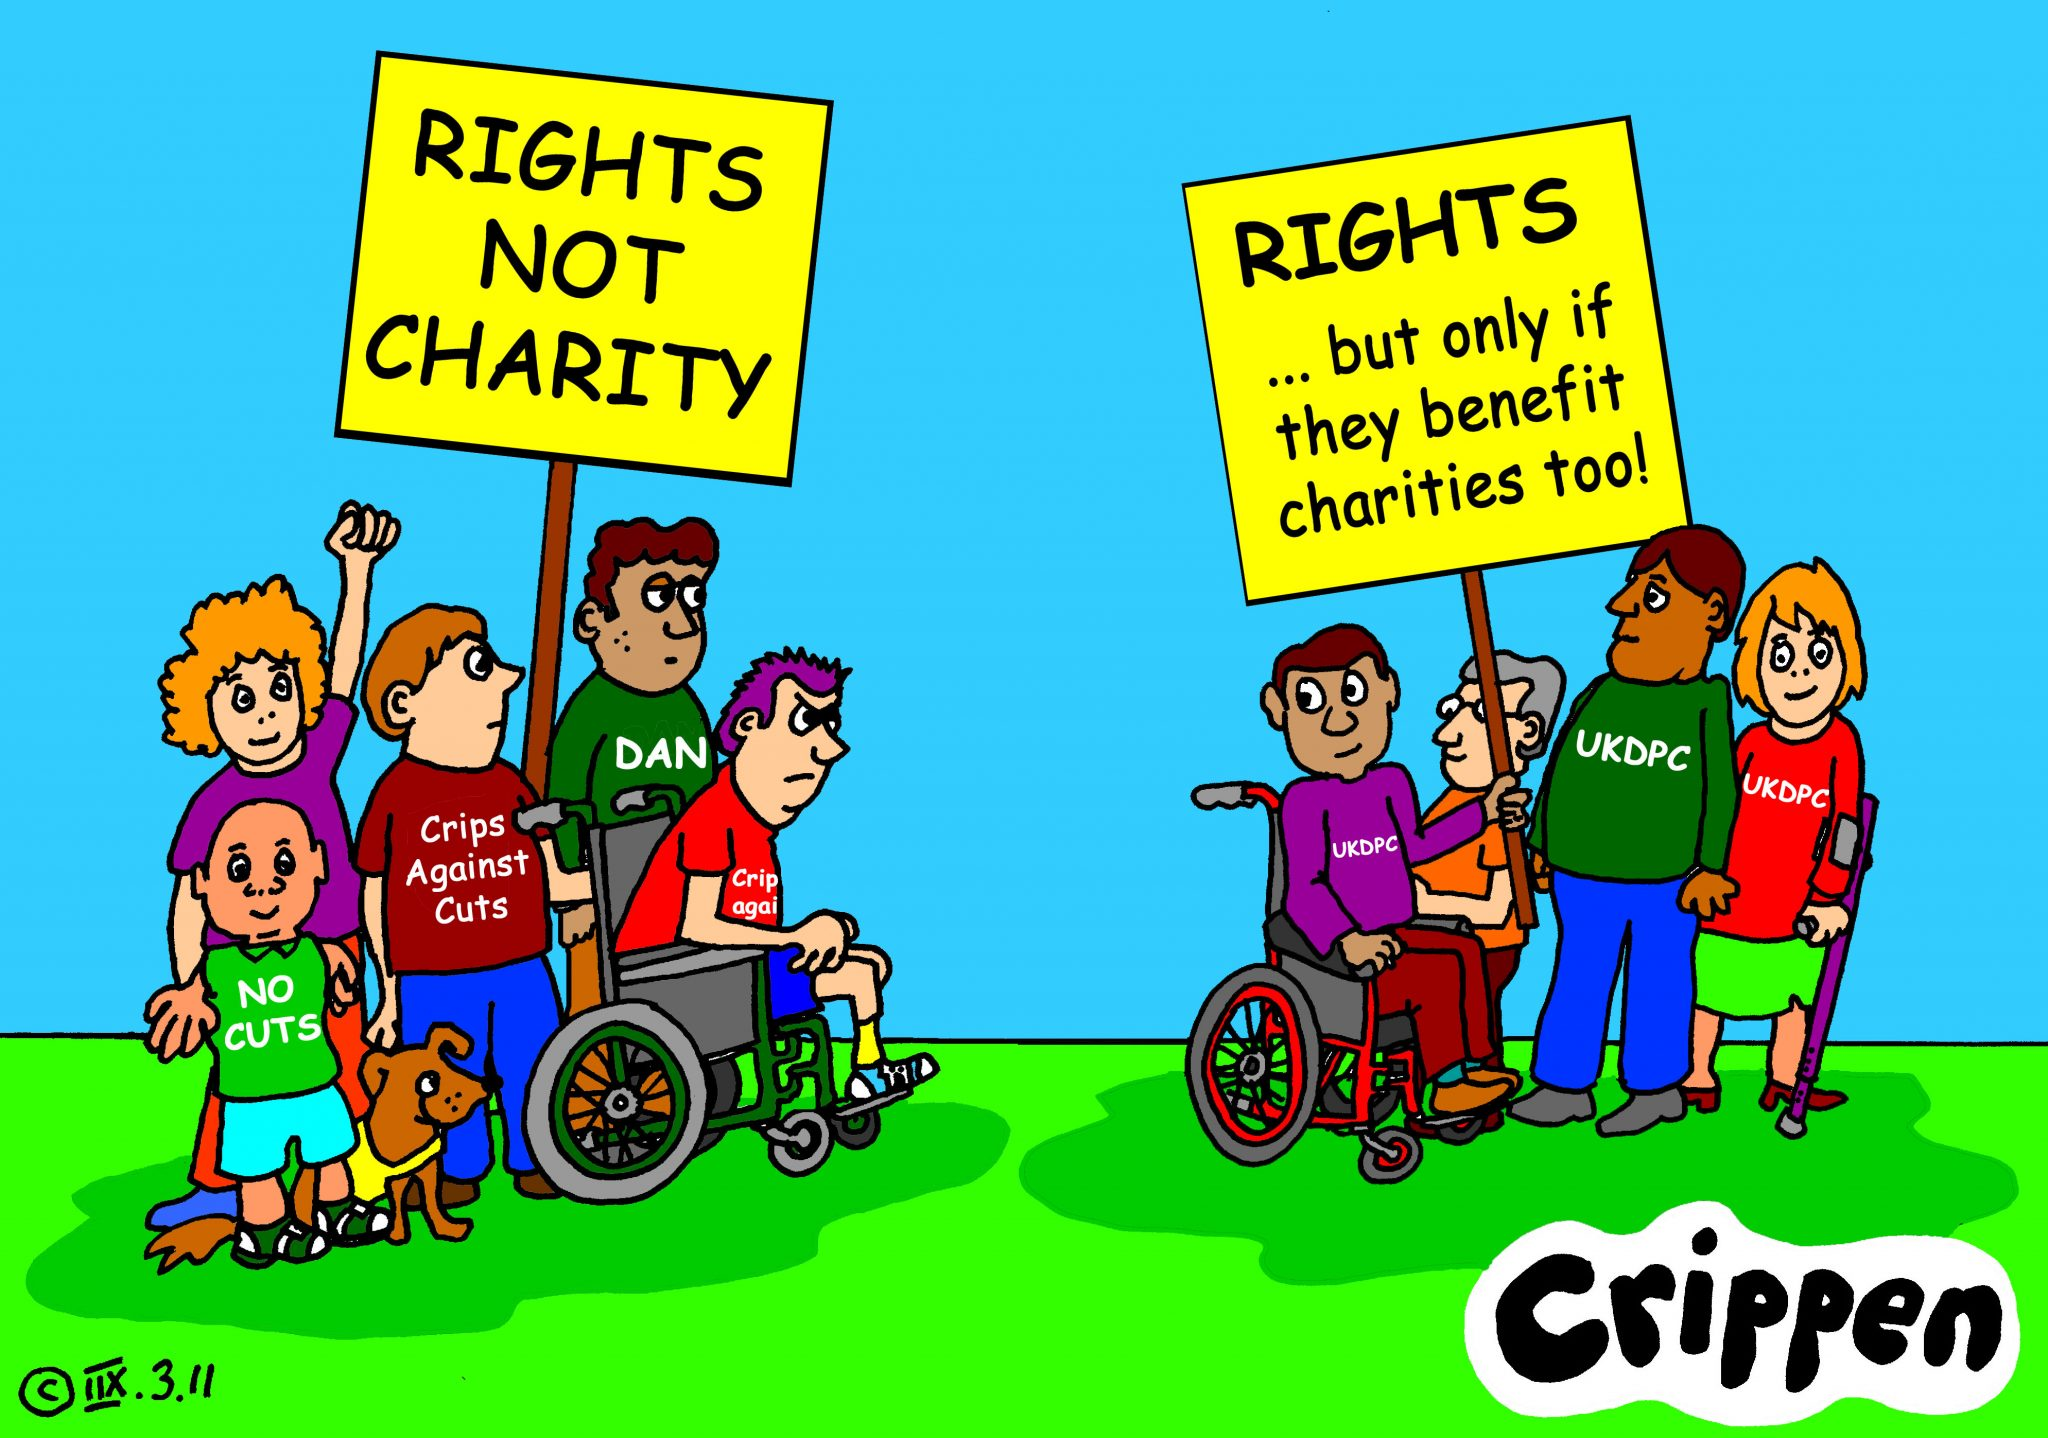 'Rights ... but only if they benefit charities too!'